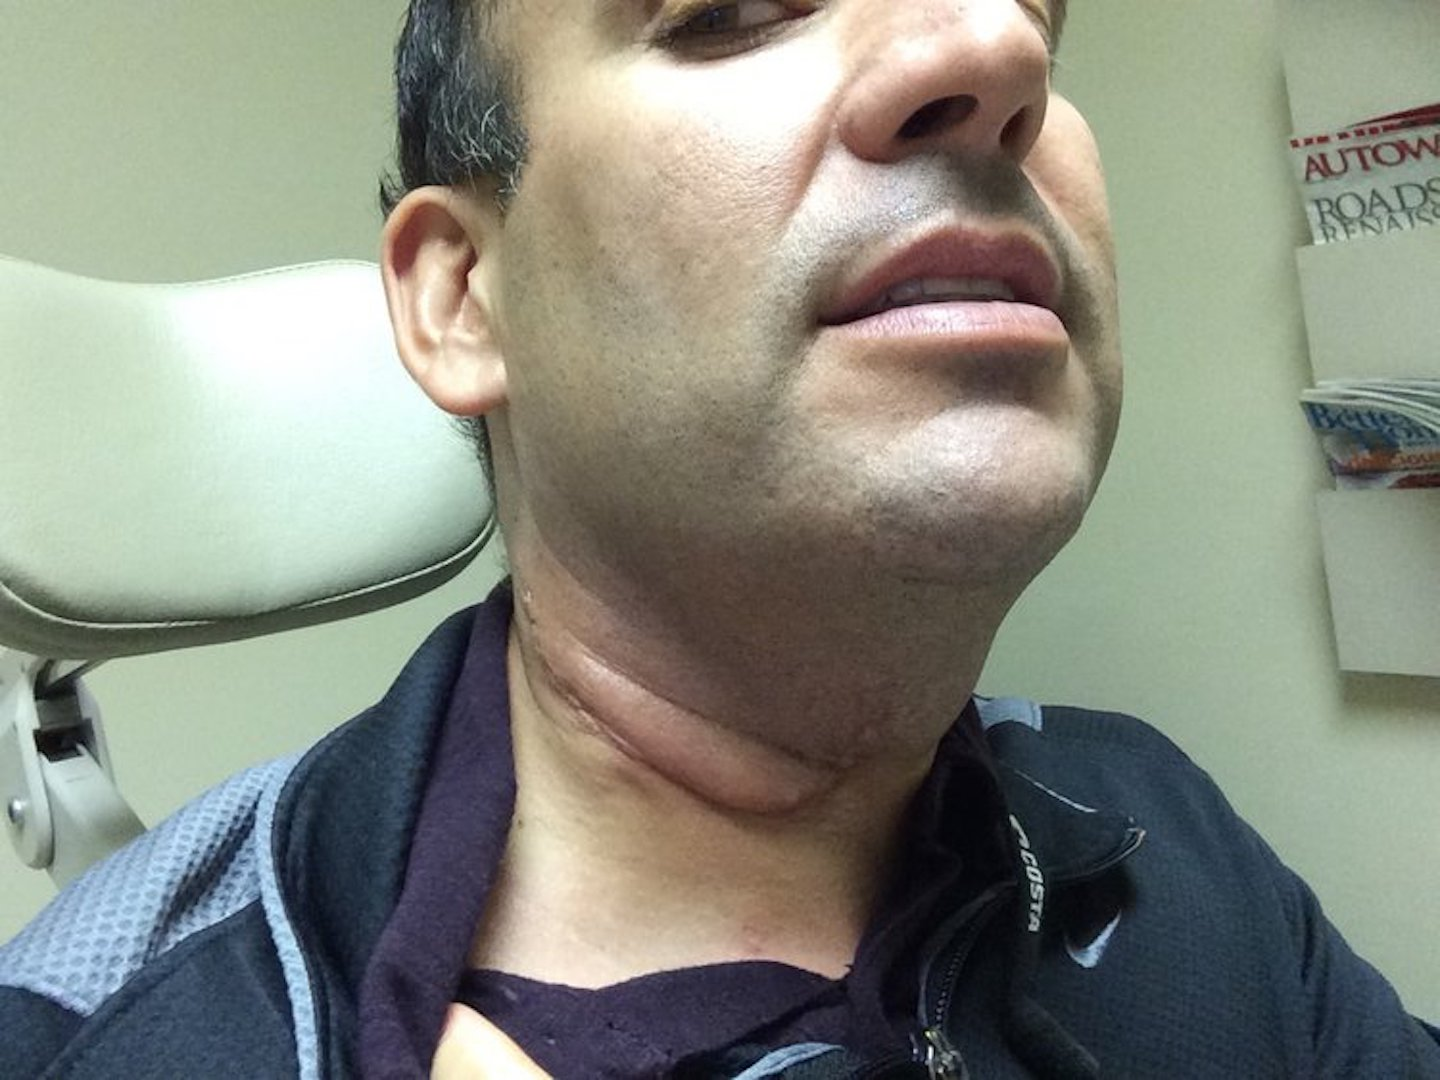 hpv throat cancer curable hpv means of transmission